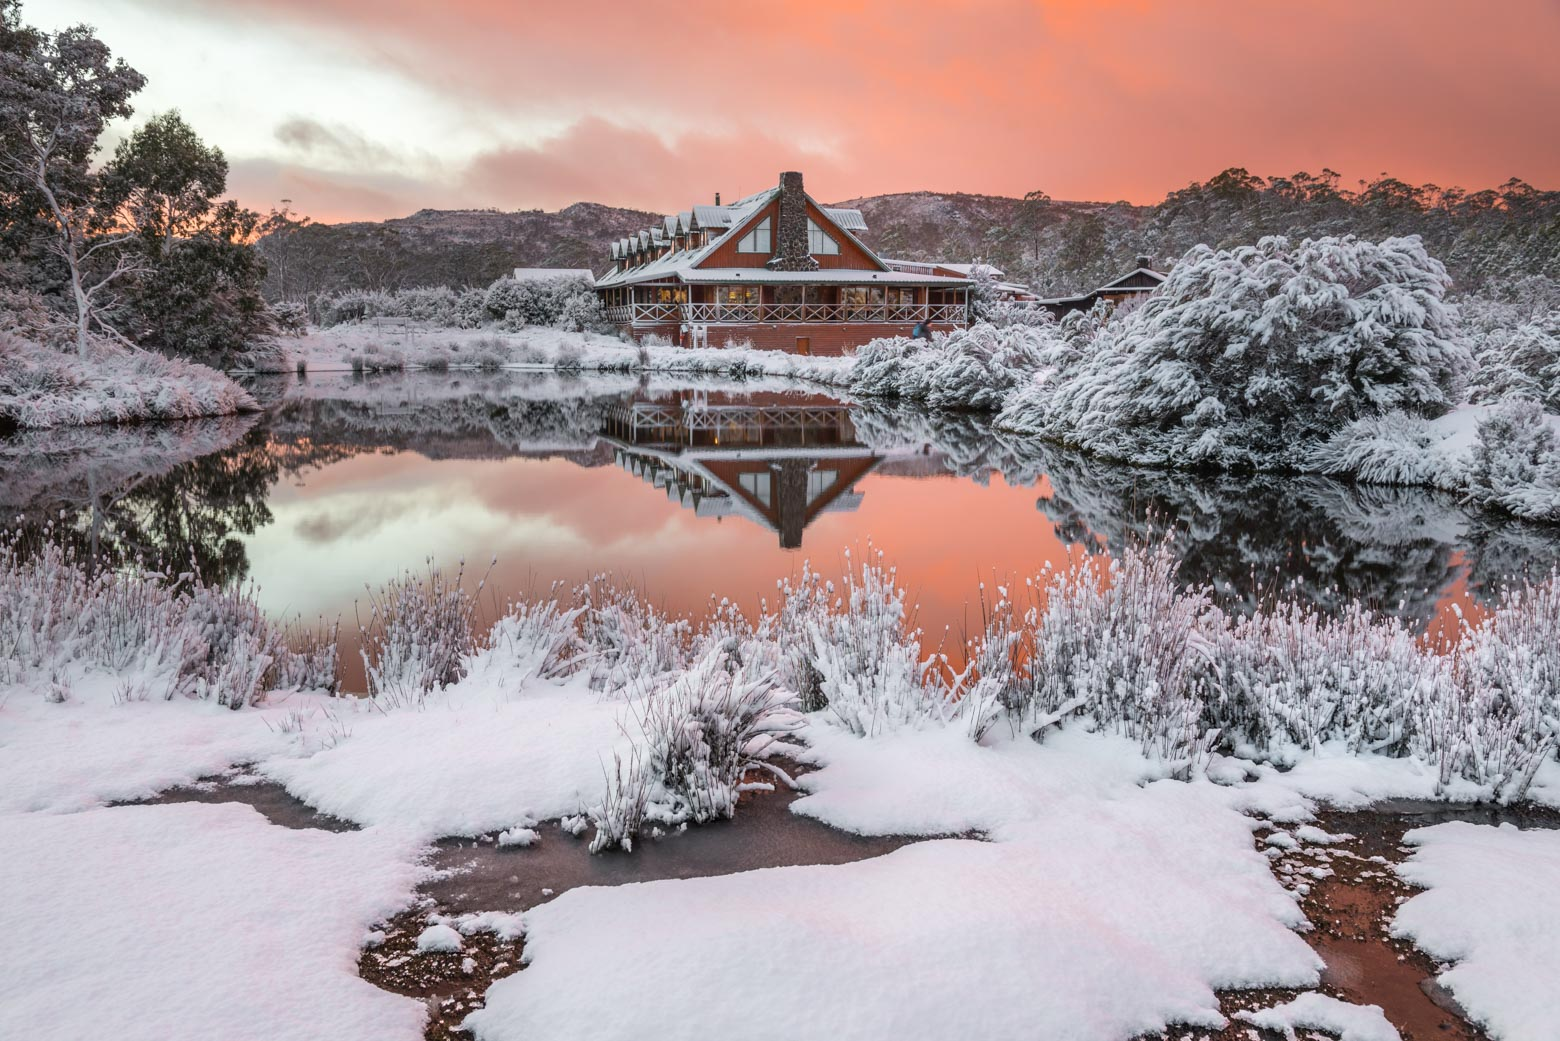 Cradle Mountain is one of the best places where to see snow in Tasmania on your Lap of Tasmania road trip